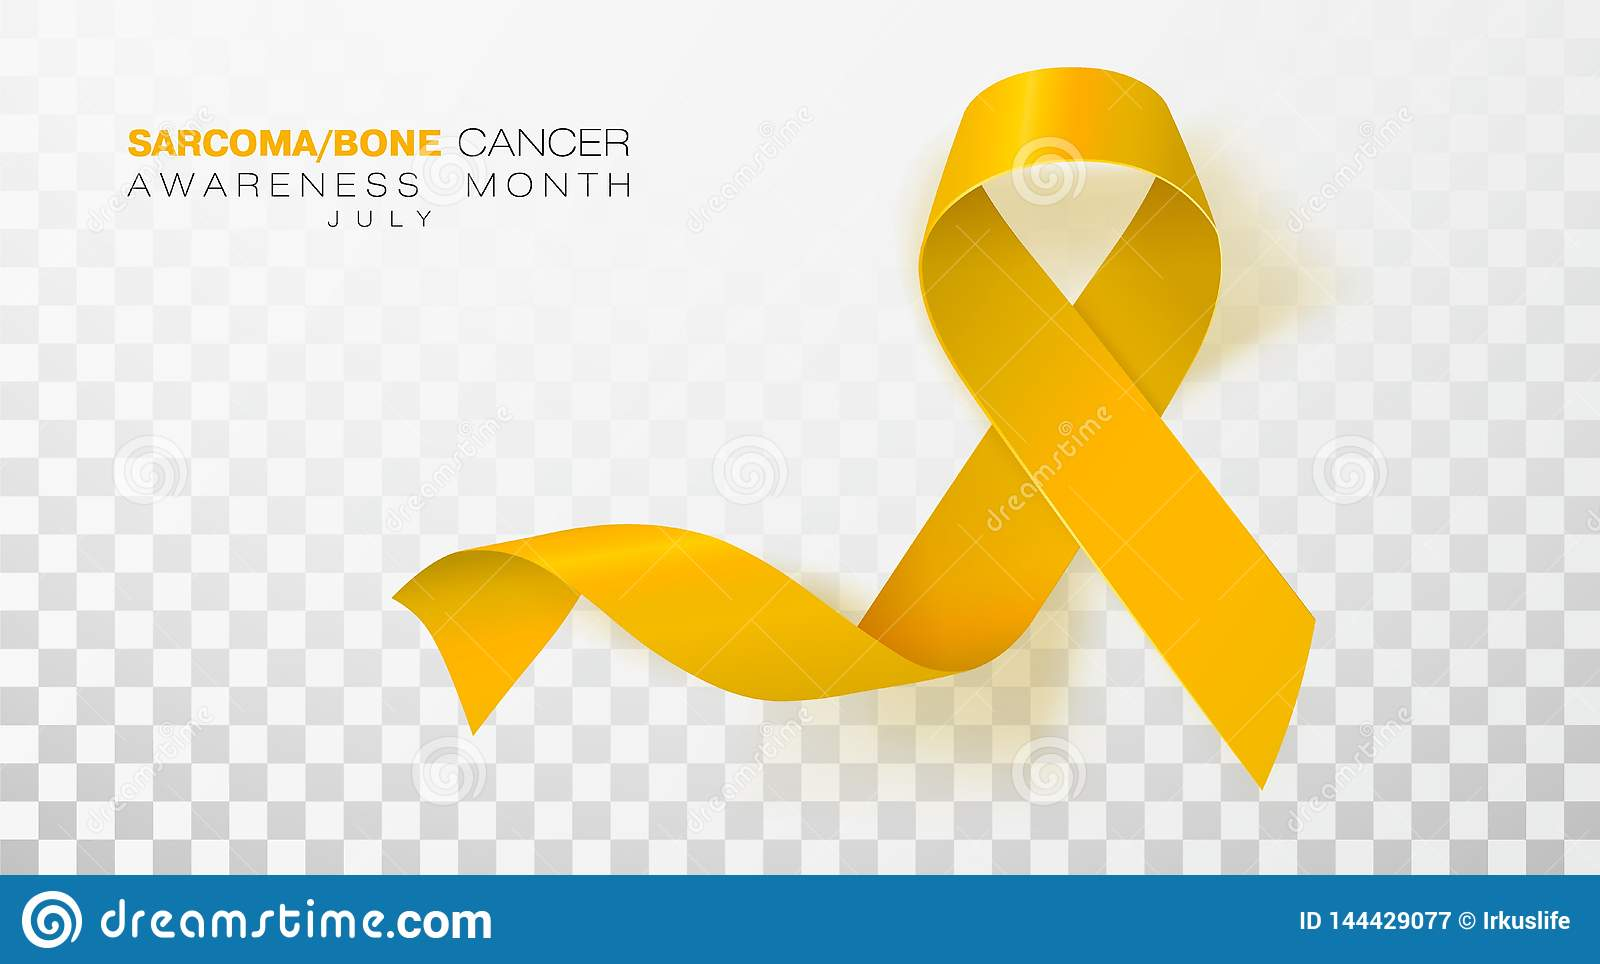 sarcoma cancer logo)